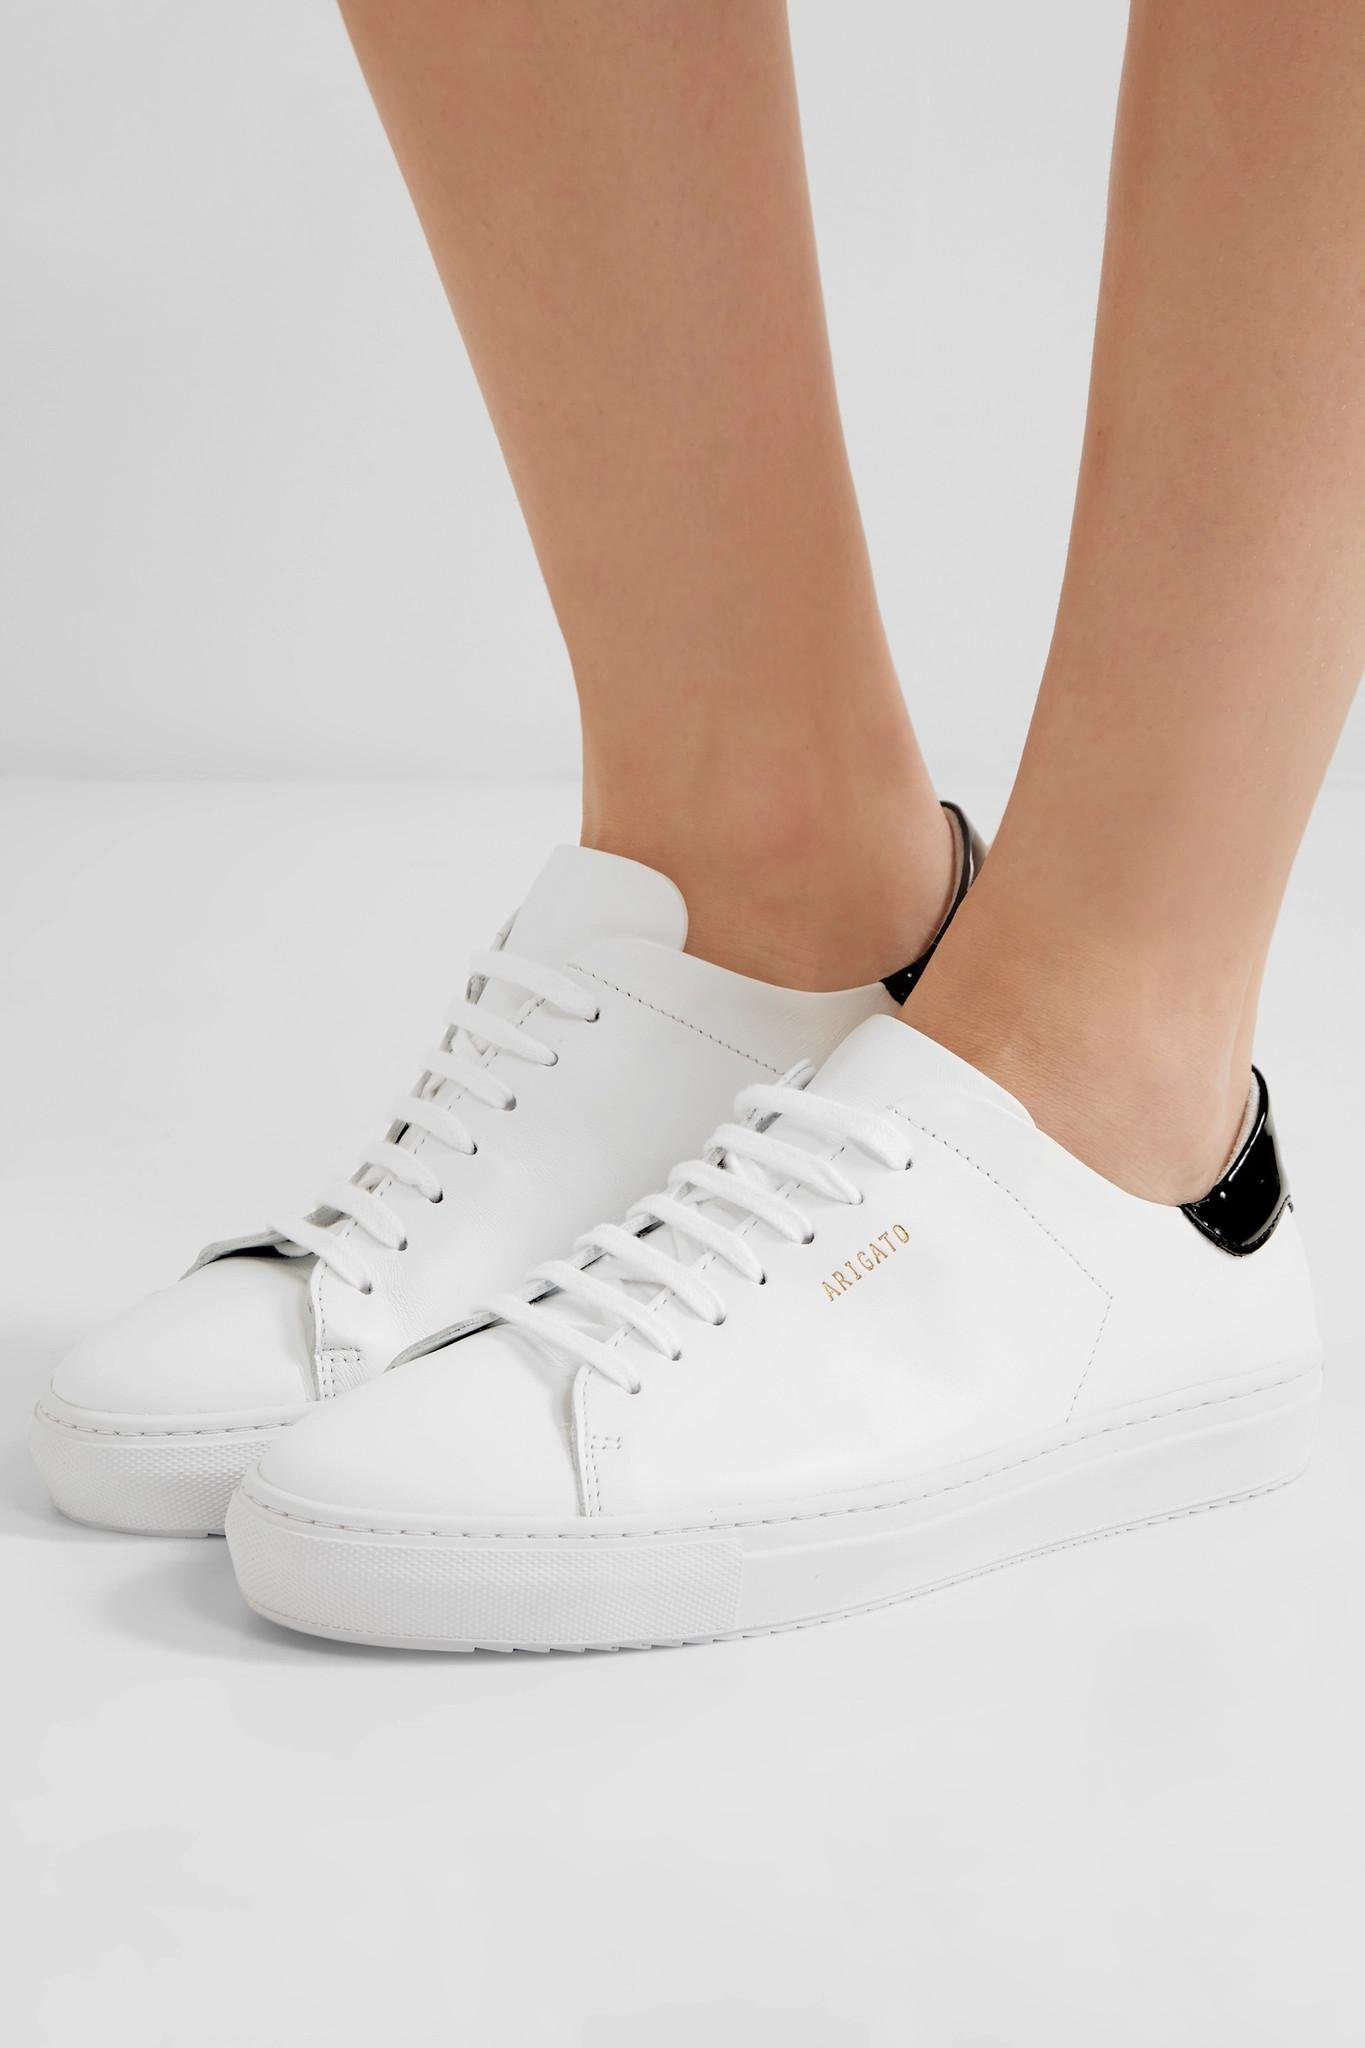 Axel ArigatoWomen's White Clean 90 Patent-trimmed Leather Sneakers